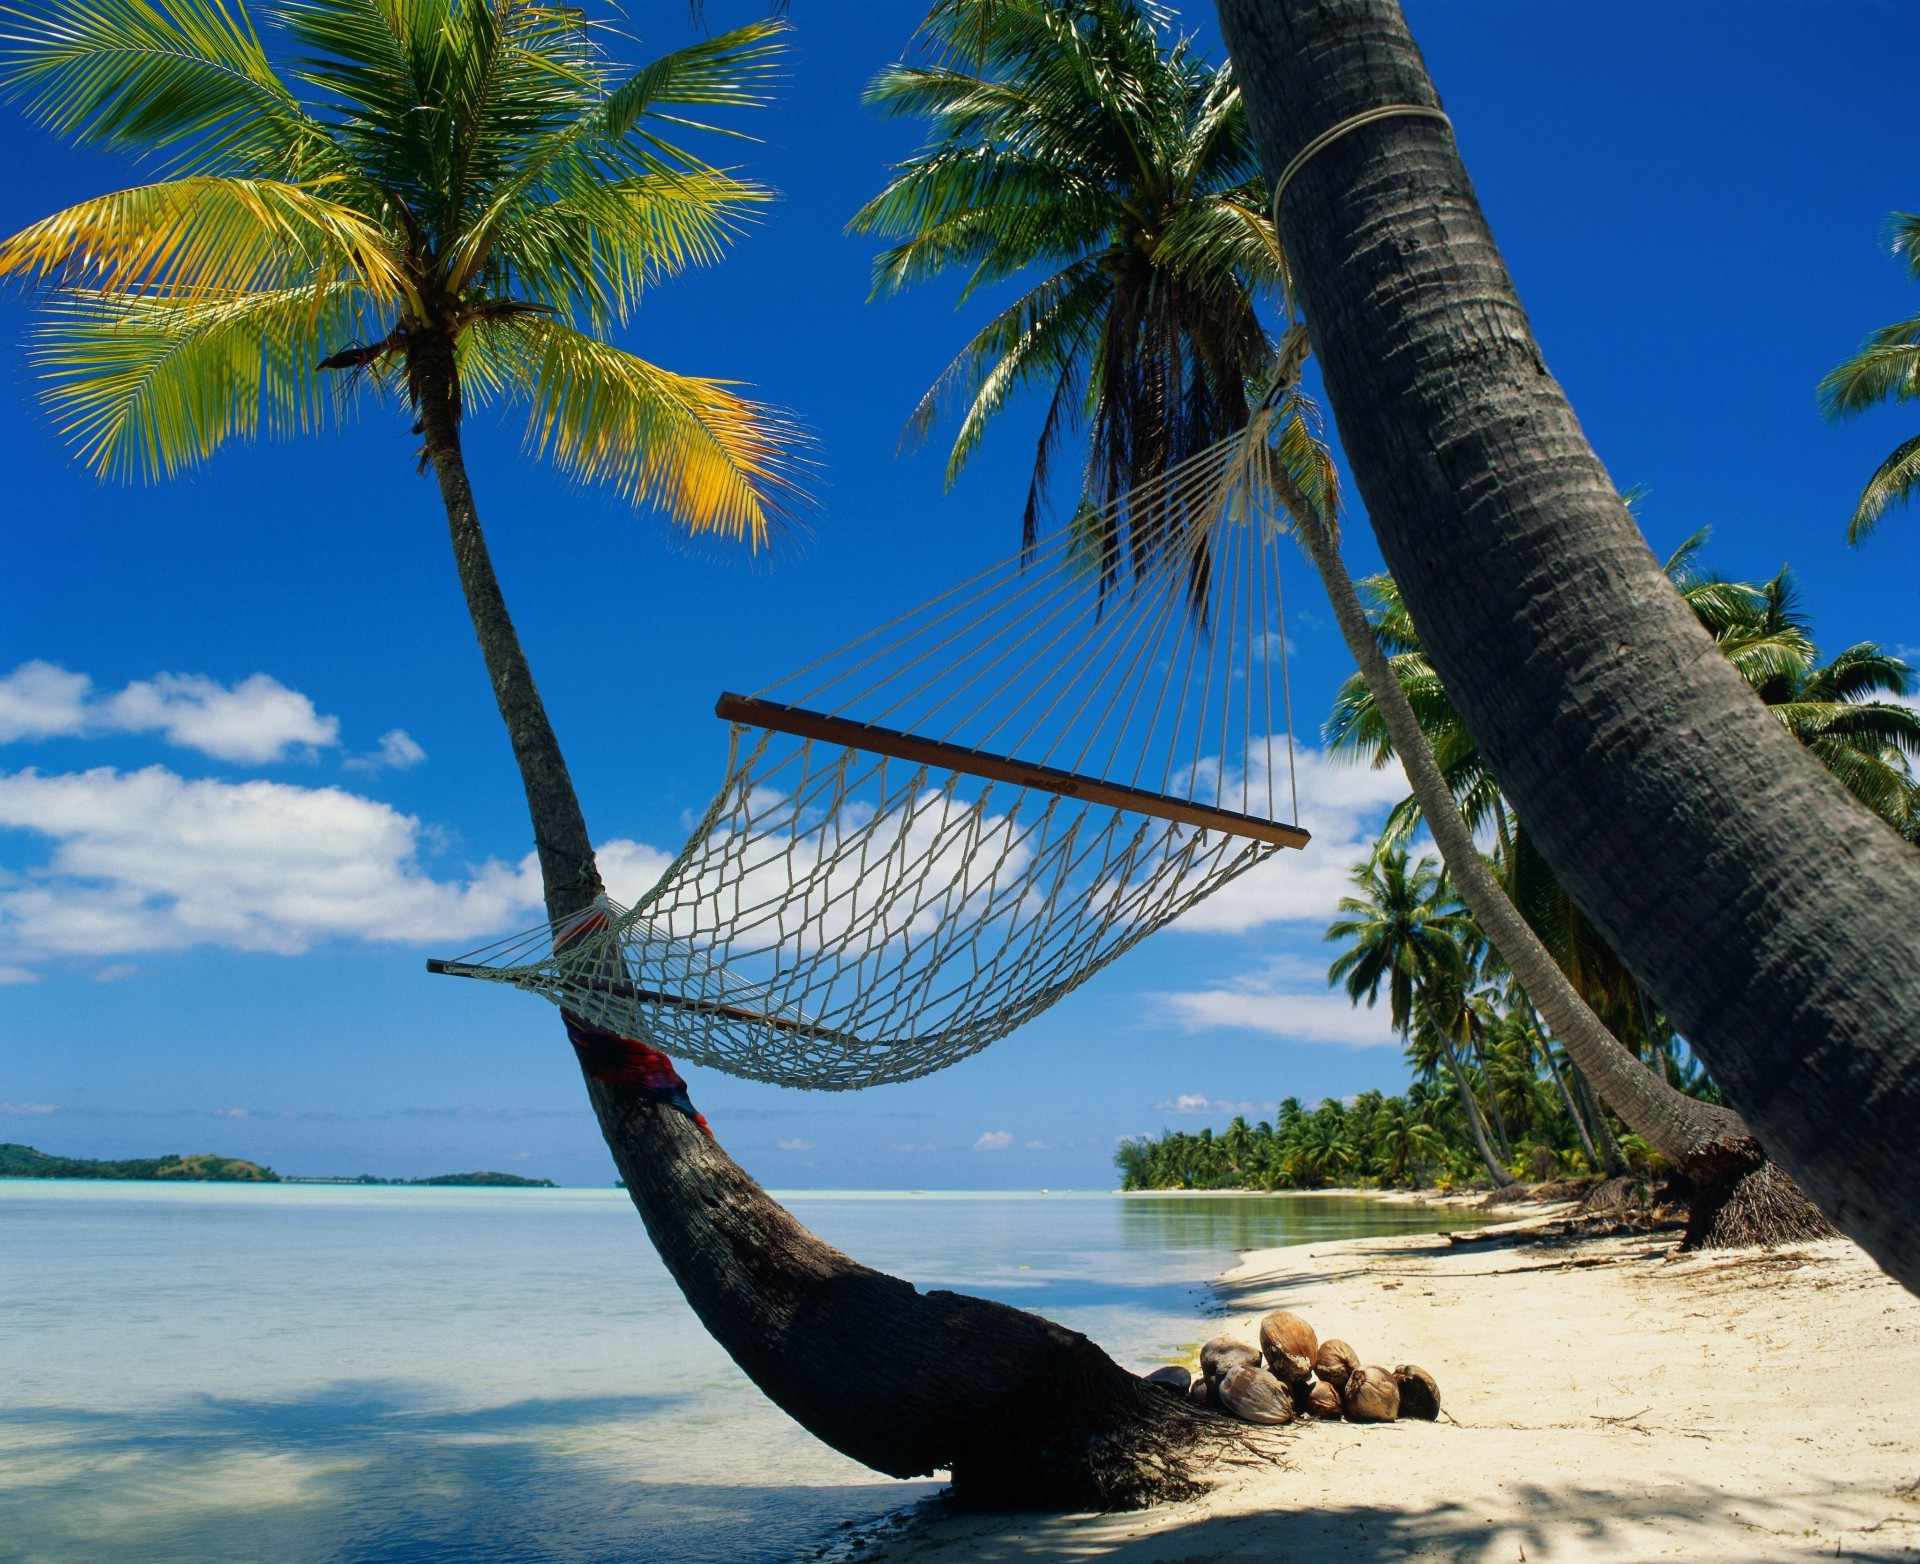 Hammock between palm trees with azure blue sea